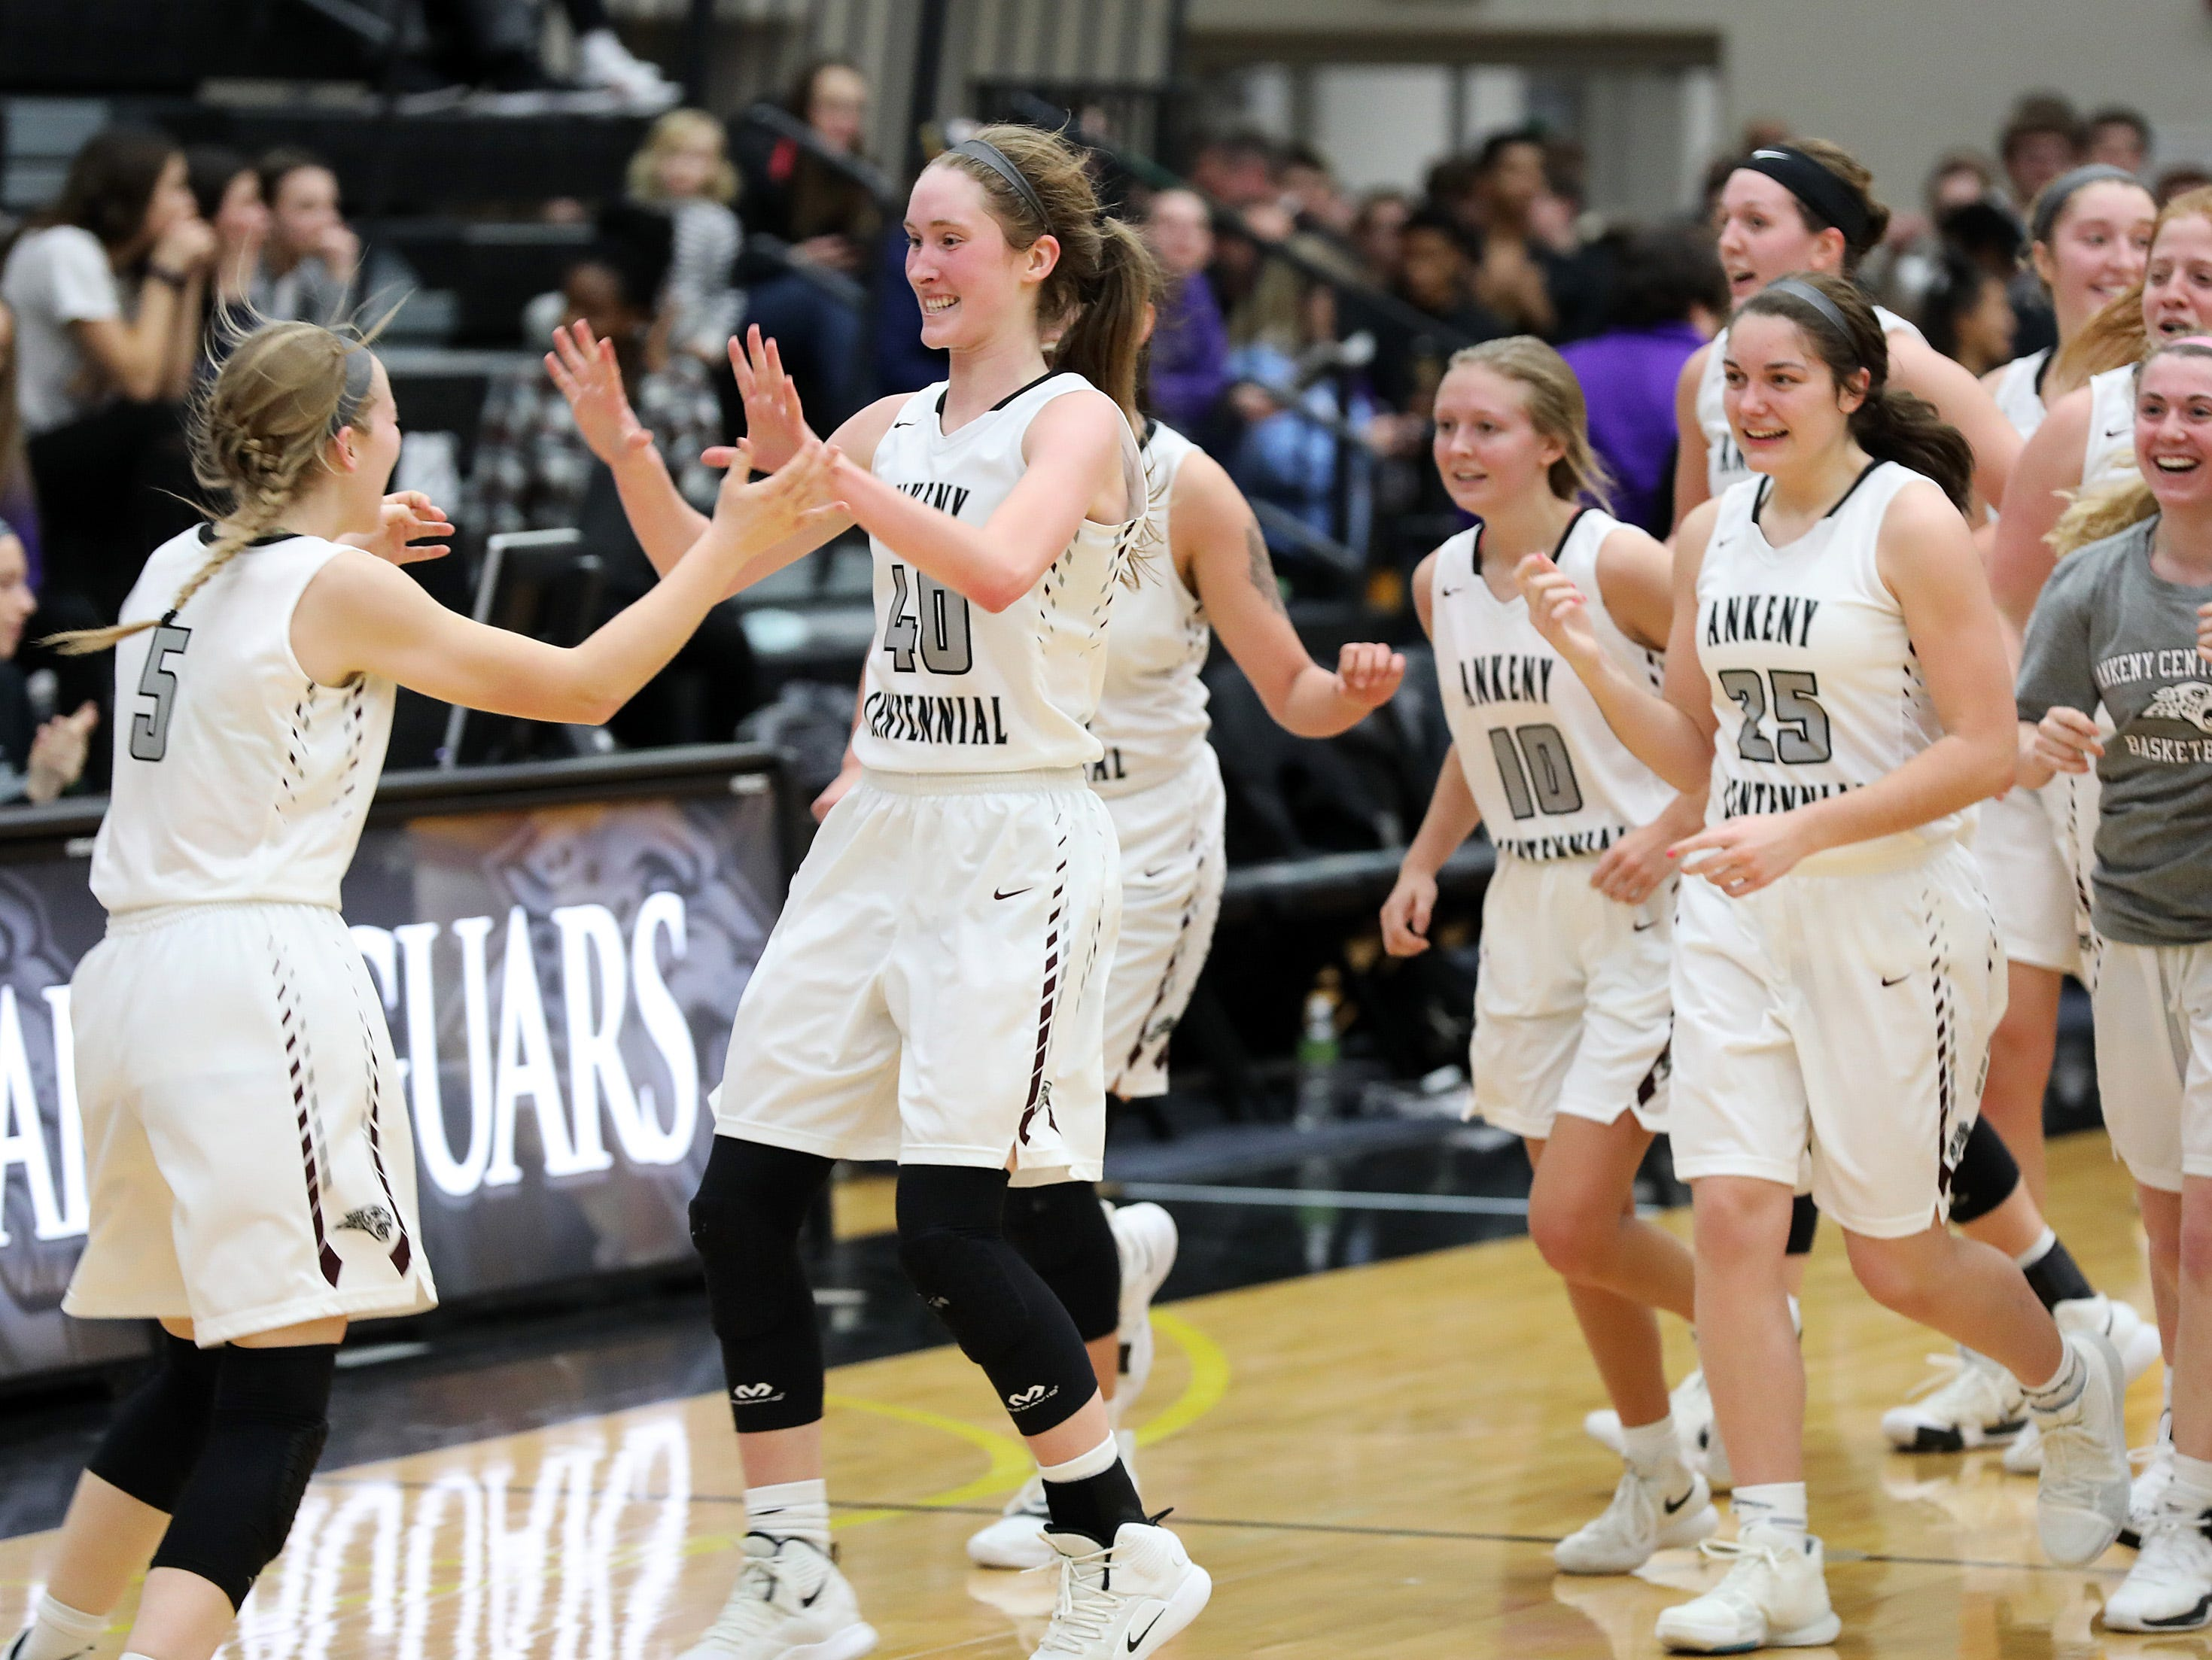 The Jags celebrate the close victory as the Johnston Dragons compete against the Ankeny Centennial Jaguars in high school girls basketball on Friday, Jan. 4, 2019 at Ankeny Centennial High School.